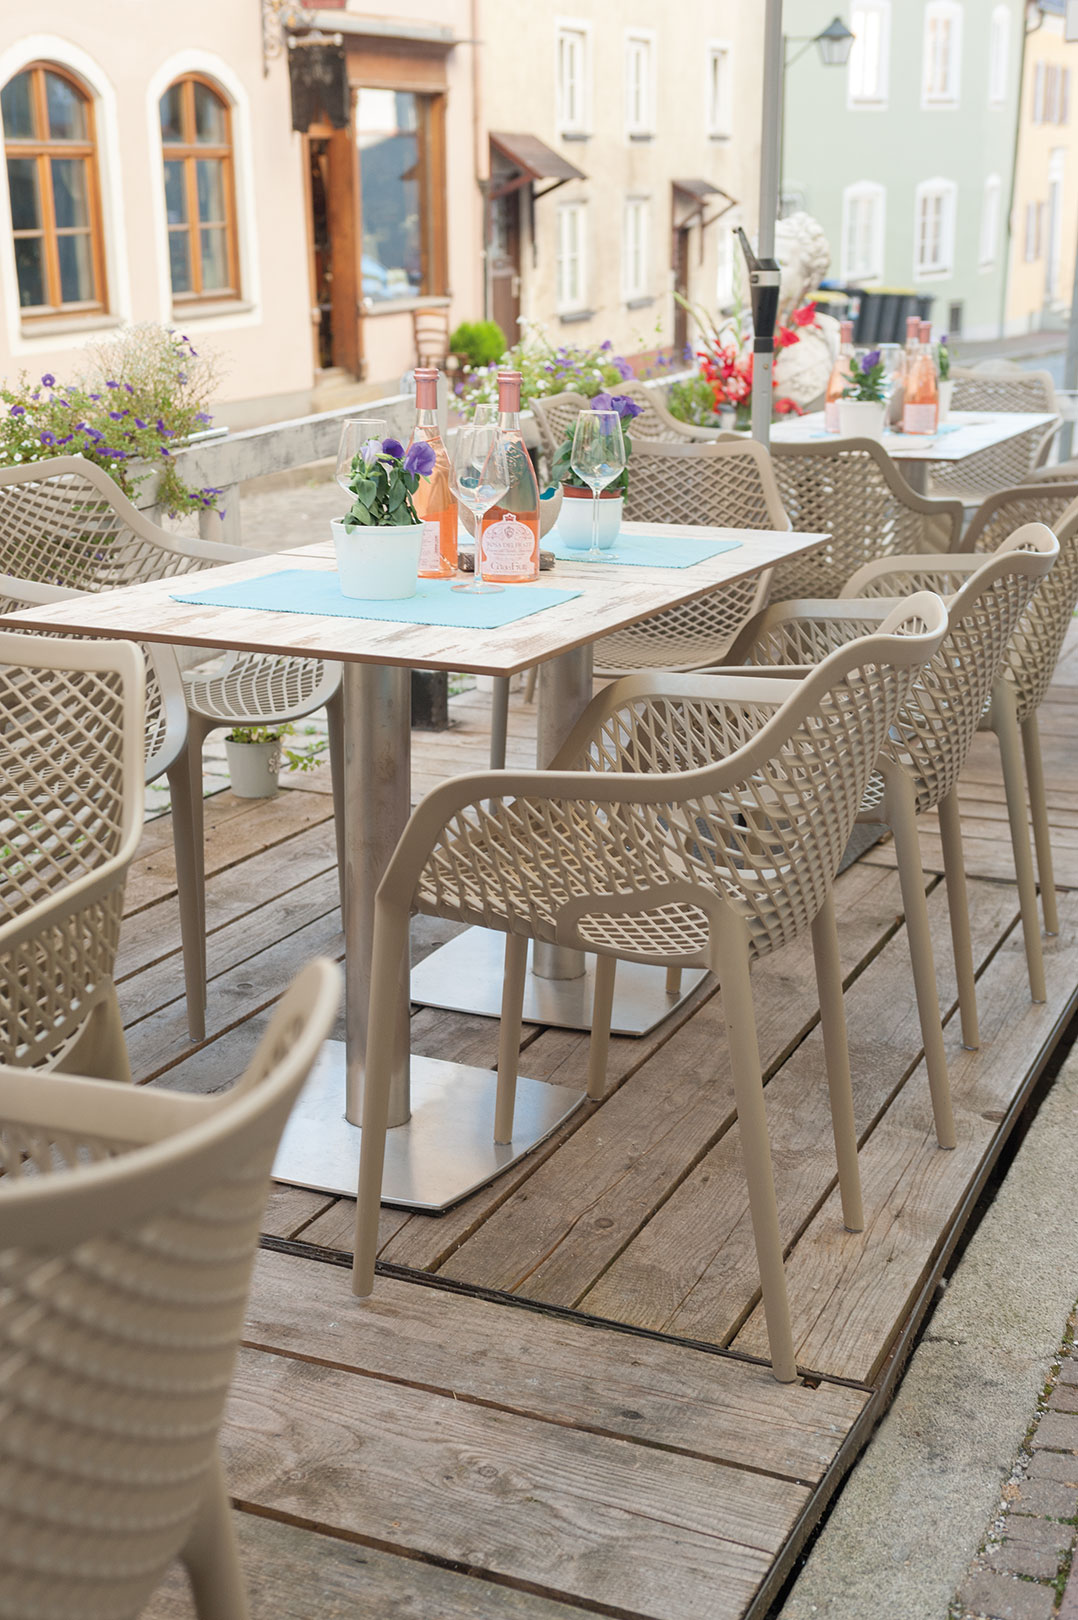 Outdoor tables for your restaurant or hotel